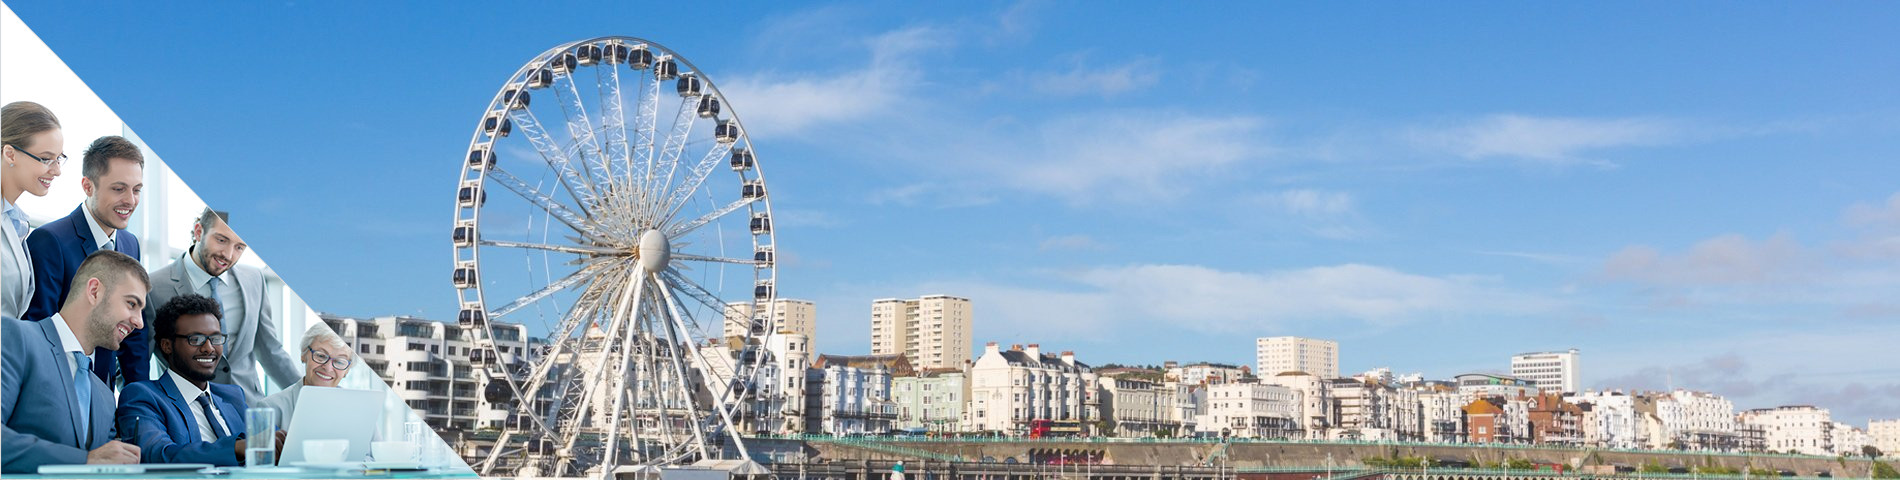 Brighton - Business Group